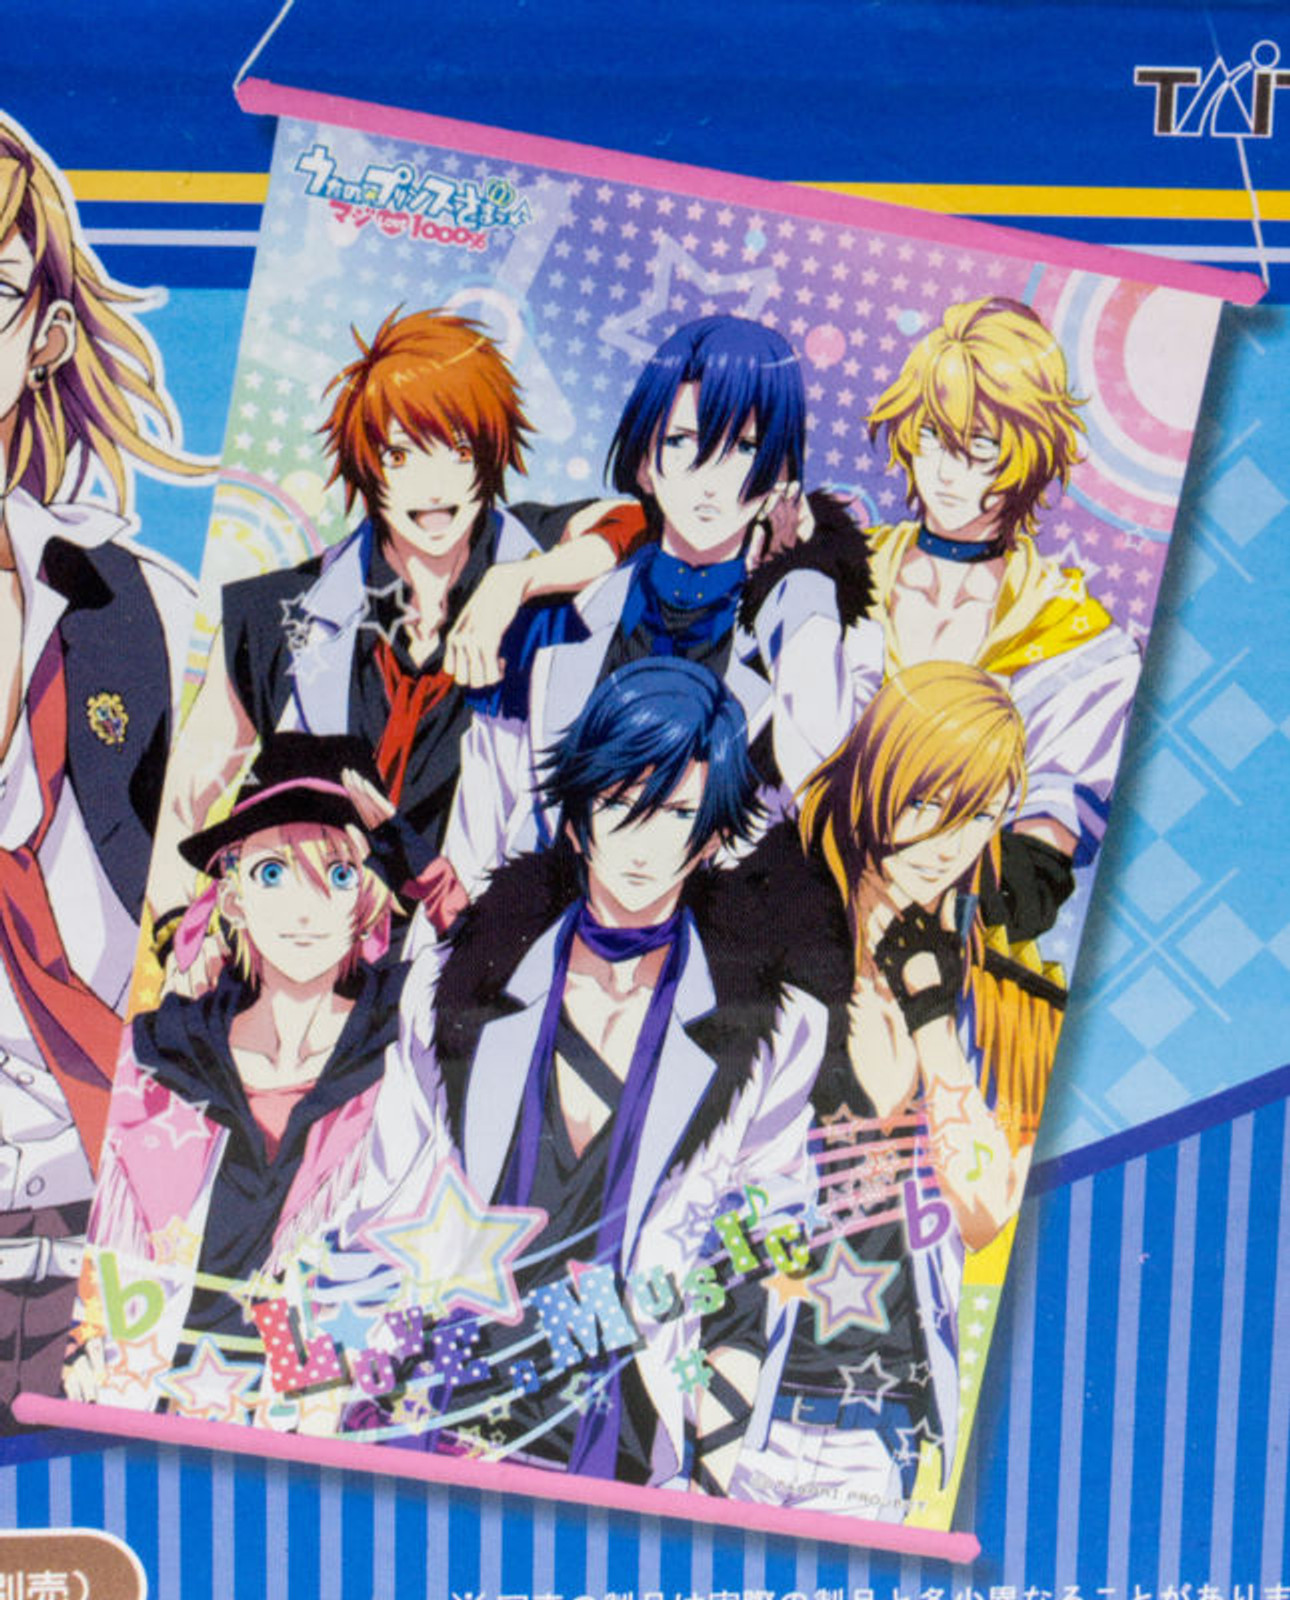 Uta no Prince Sama A2 size Tapestry w/Sound Speaker Taito Kuji JAPAN ANIME MANGA